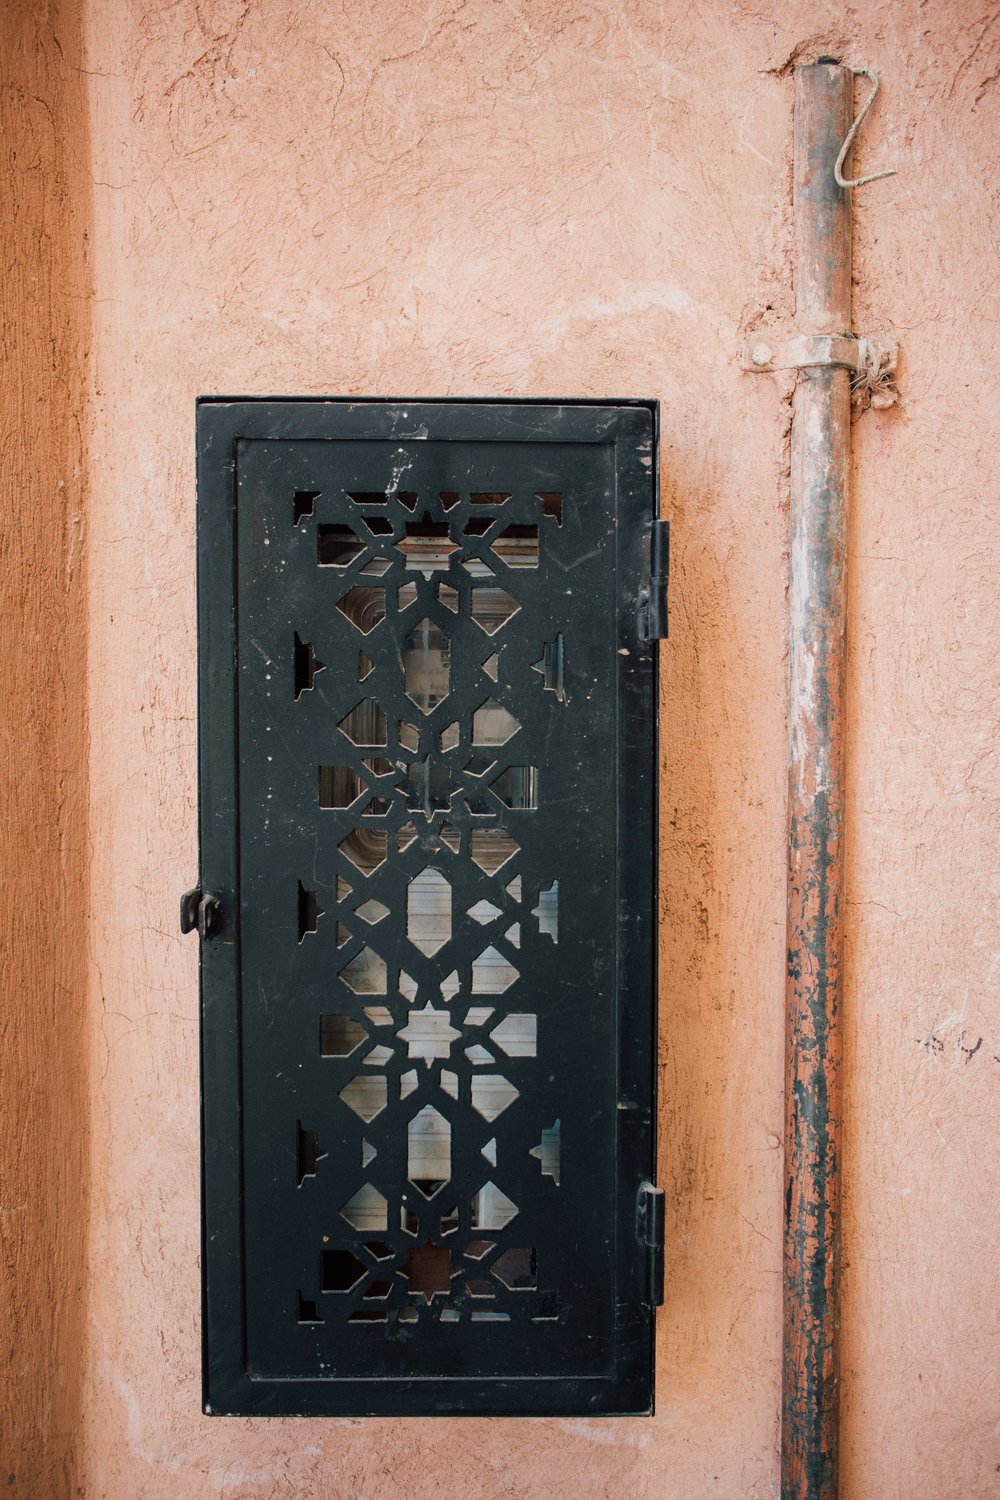 Marrakech by Jorge Güiro 40.jpg